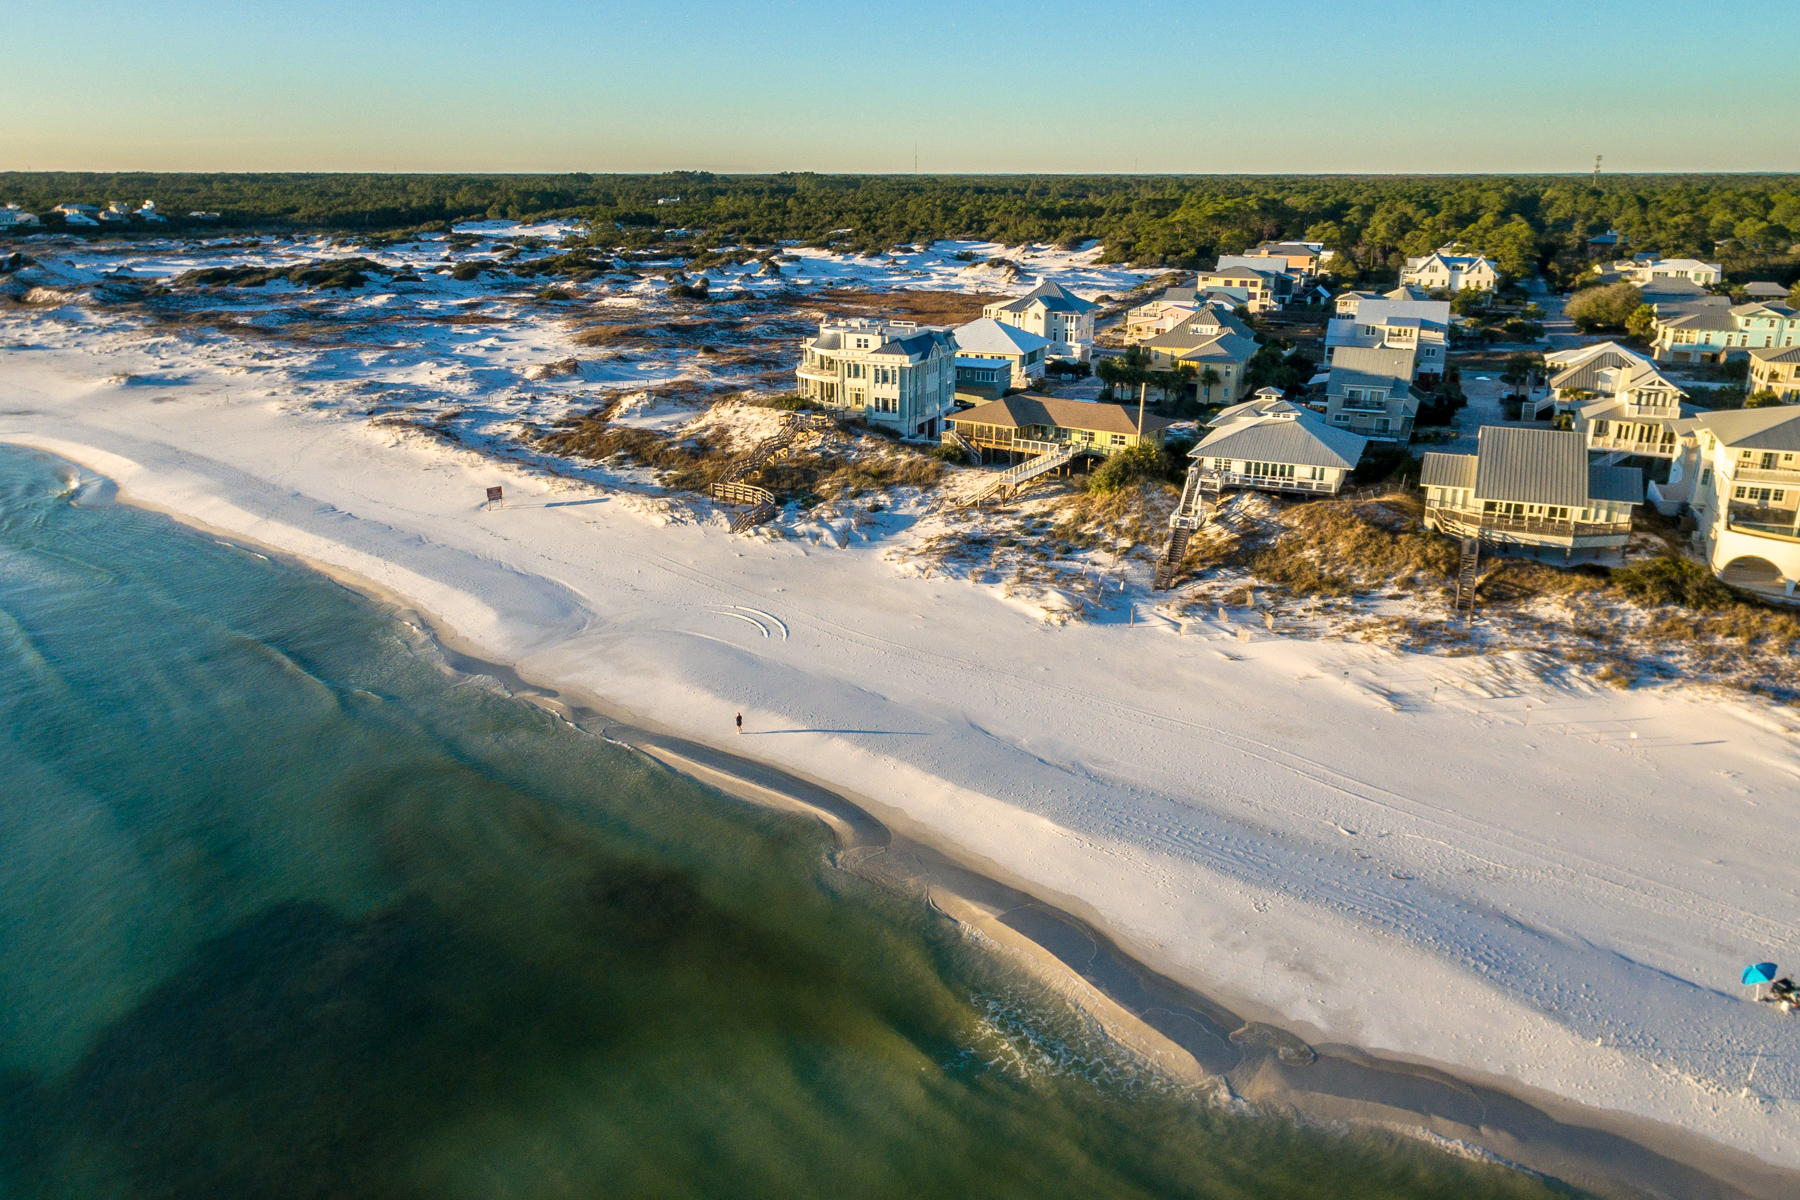 Terreno por un Venta en Rare Gulf-front Ownership Opportunity in Grayton Beach 79 Lupine Road, Santa Rosa Beach, Florida 32459 Estados Unidos